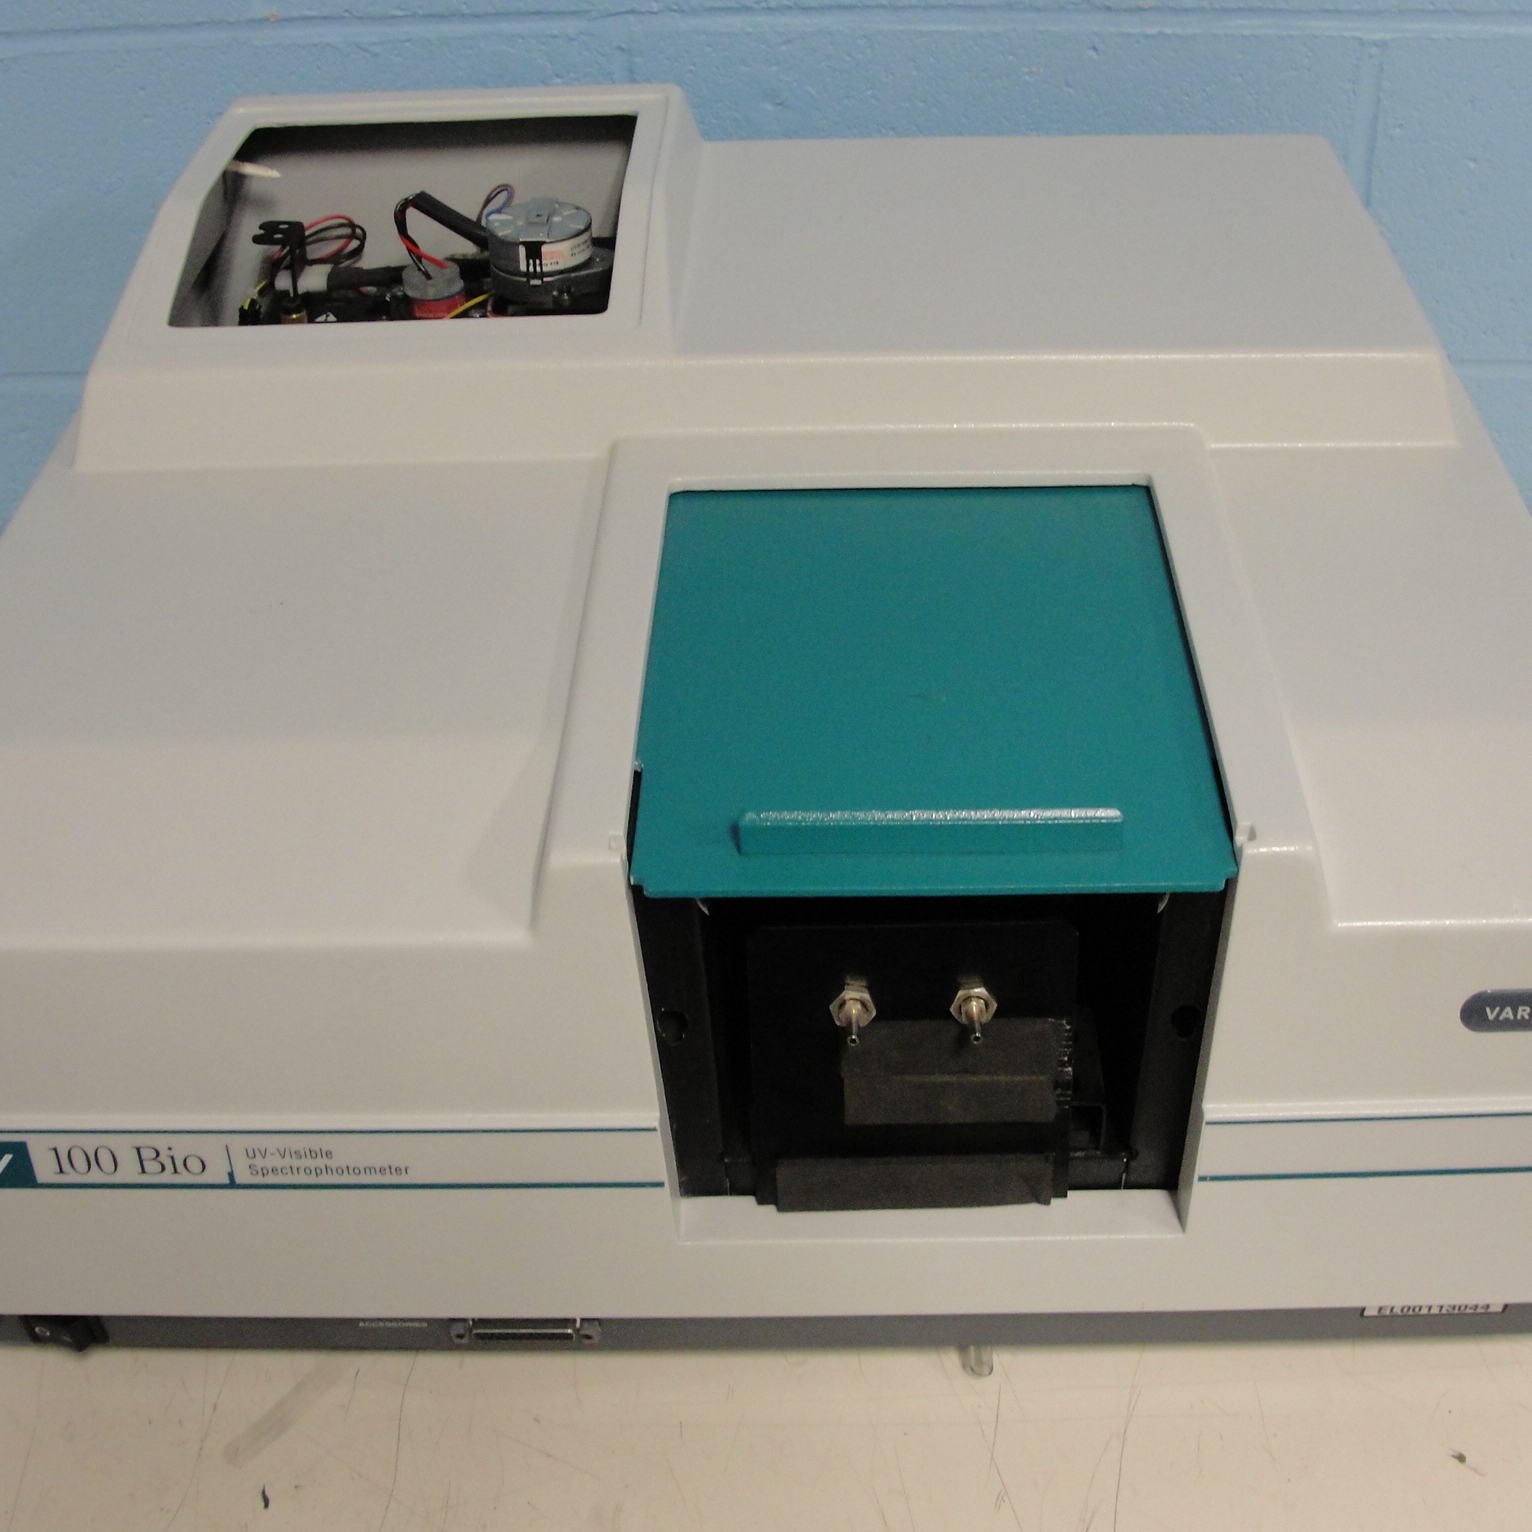 Varian Cary 100 Bio UV-Visible Spectrophotometer Image